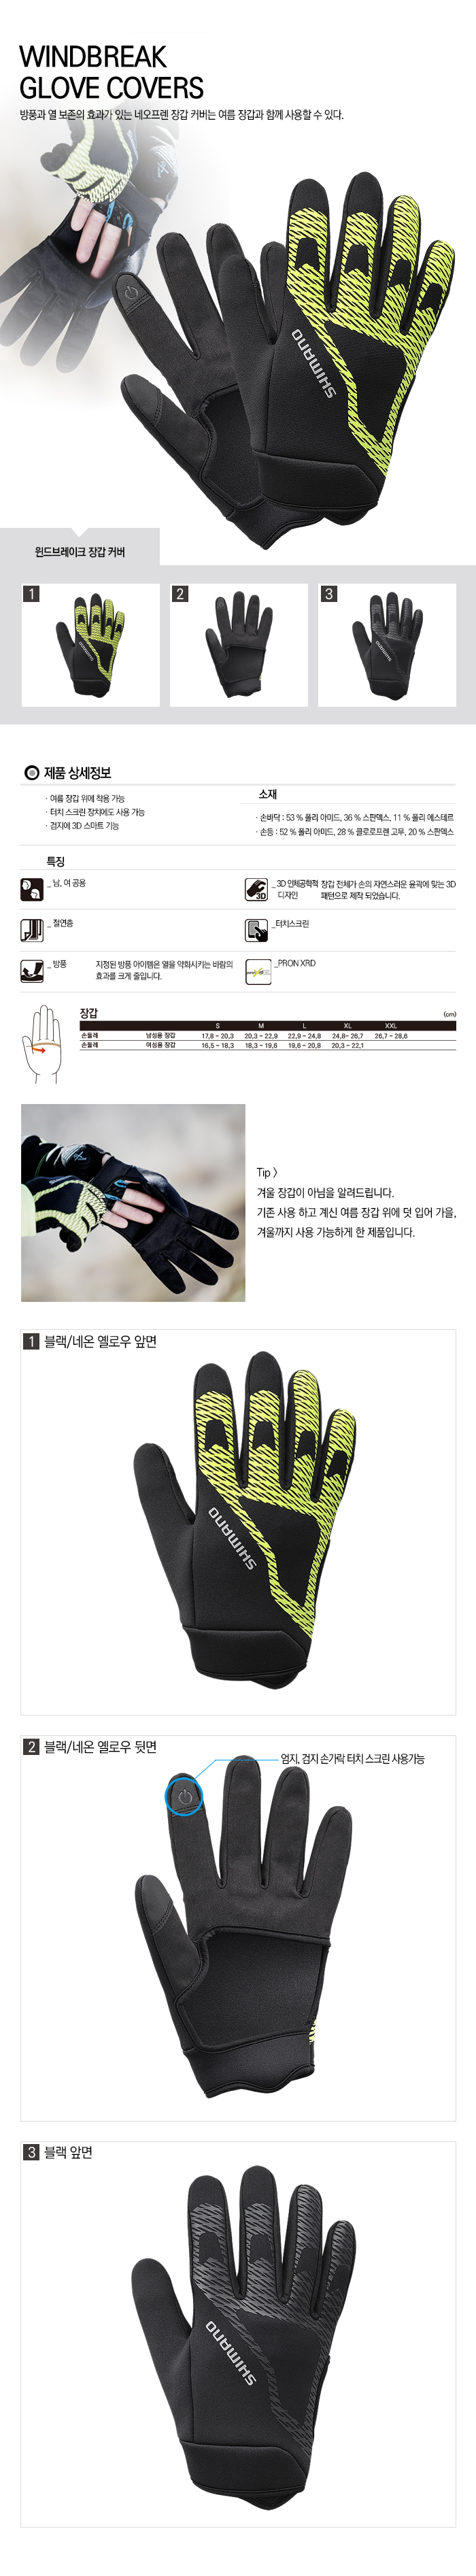 WINDBREAK GLOVE COVERS.jpg